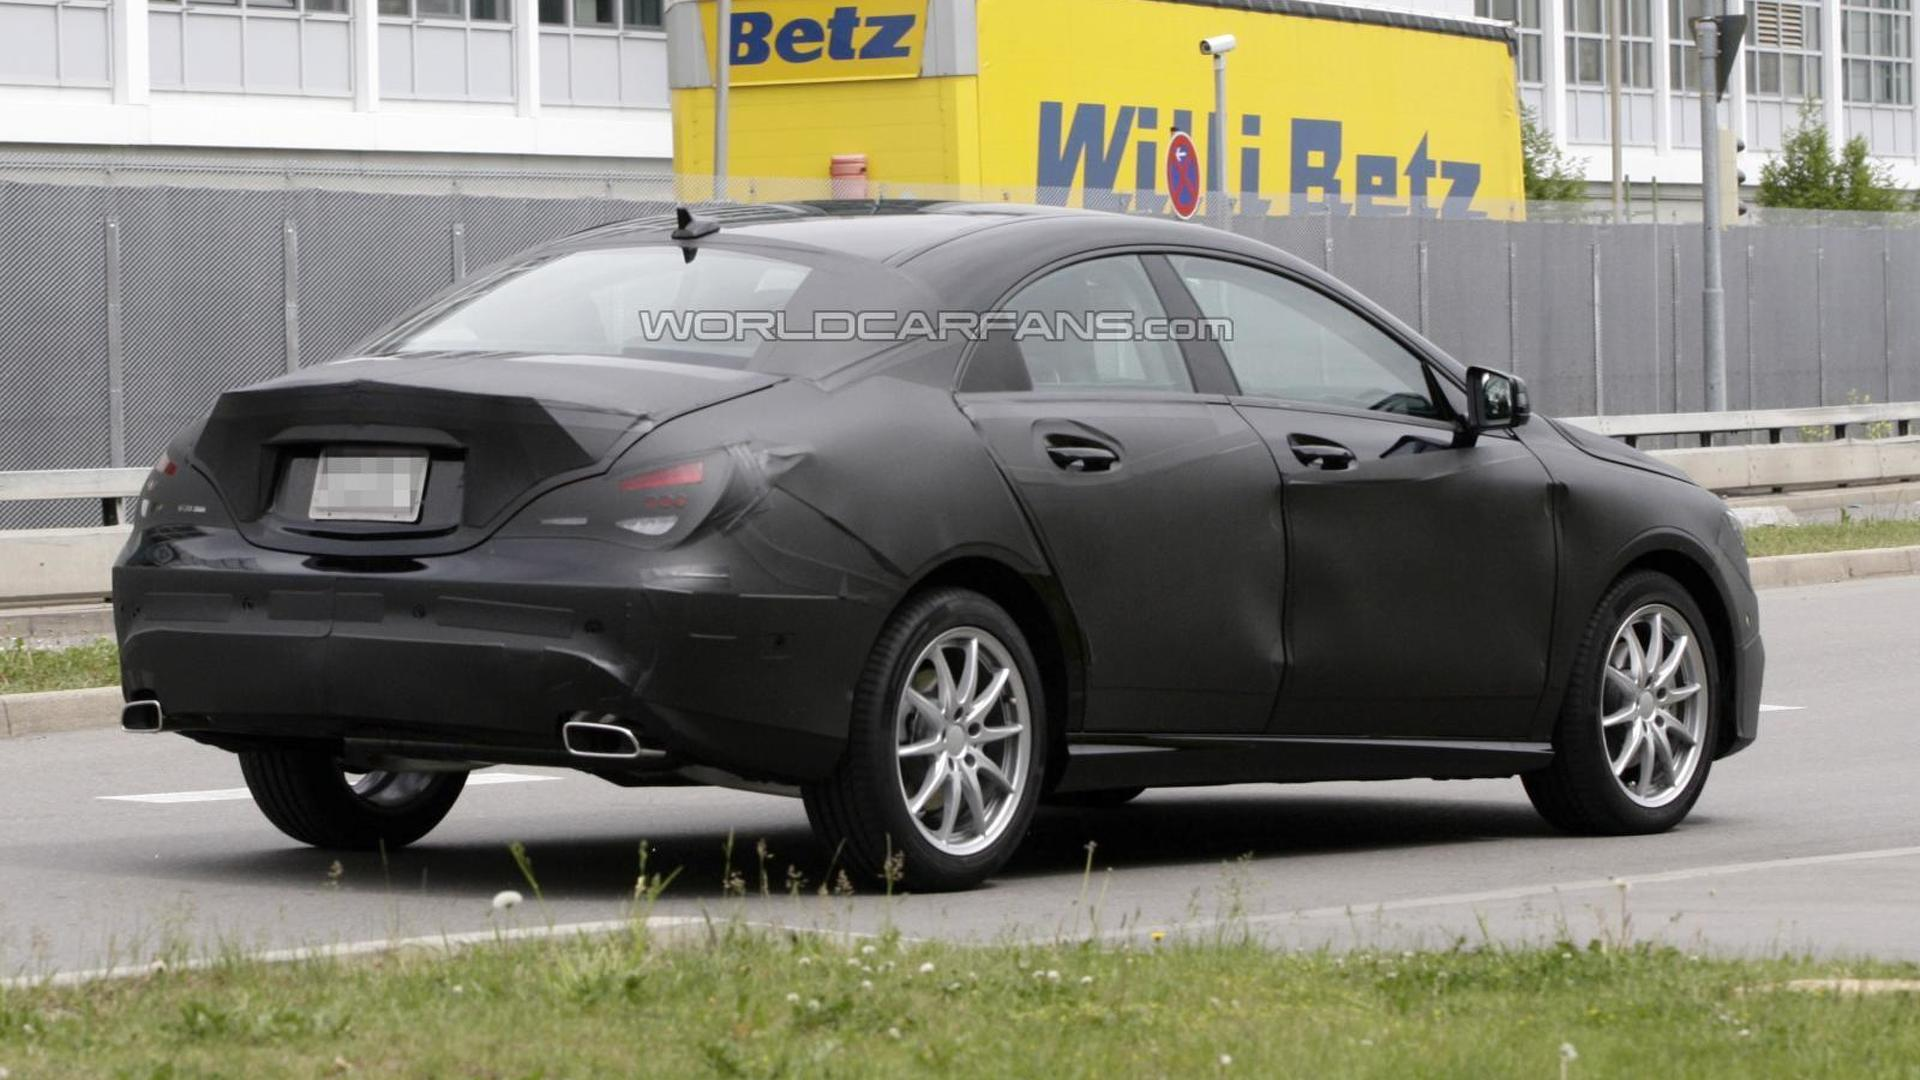 Mercedes CLA-Class testing caught on video